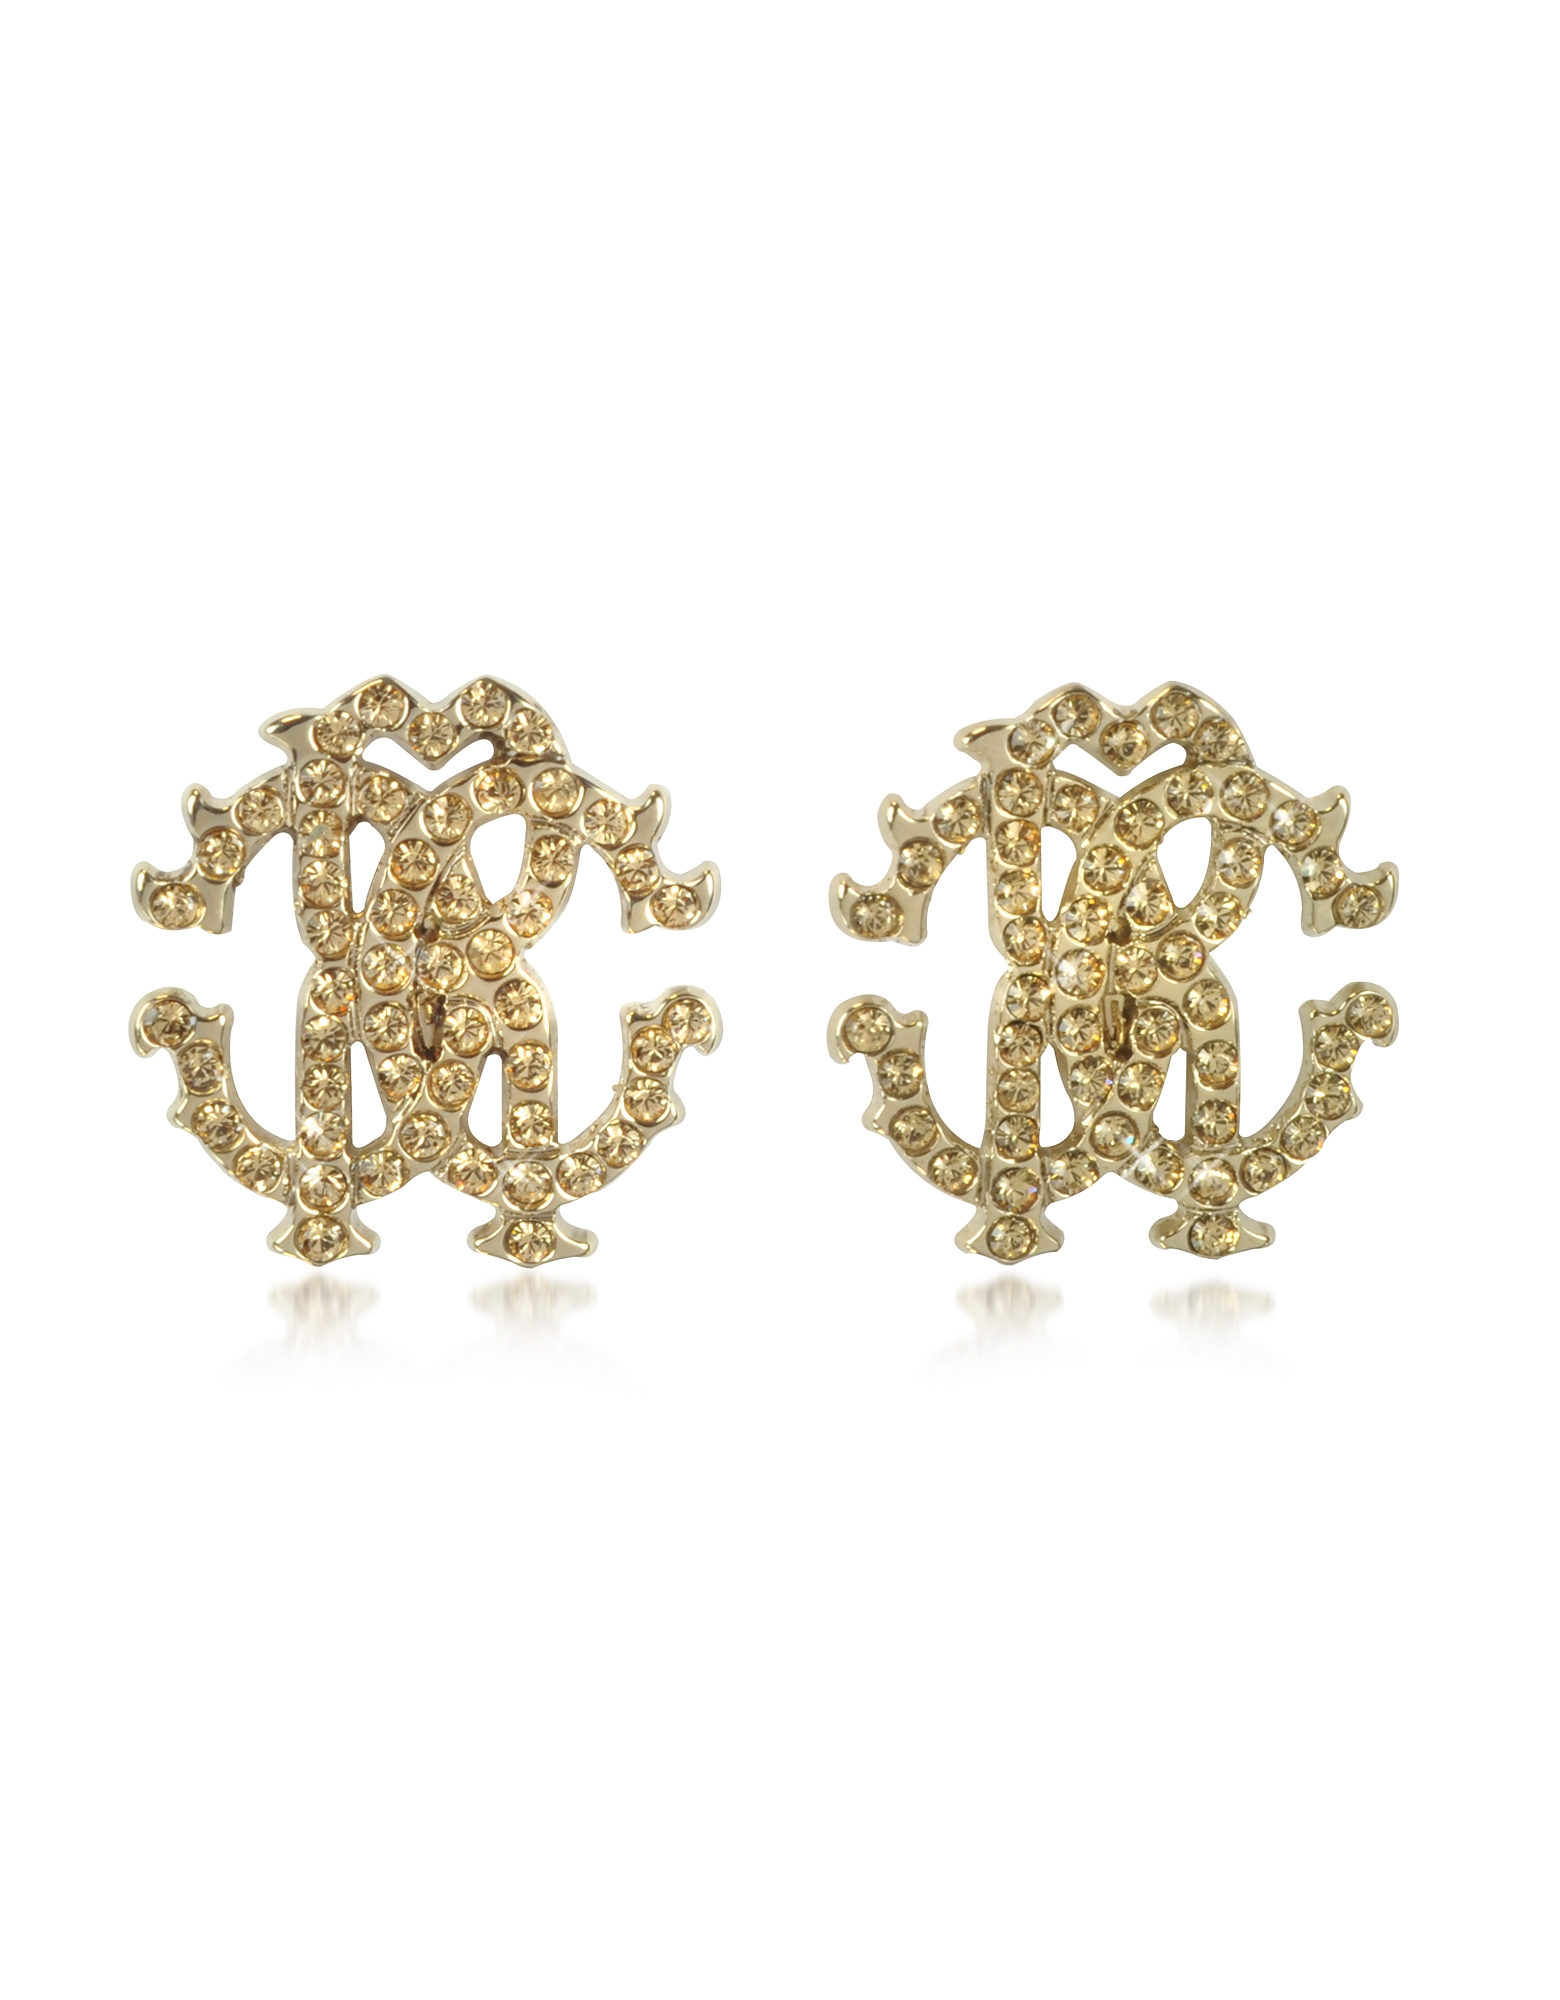 Roberto Cavalli Earrings, RC Lux Crystals Stud Earrings